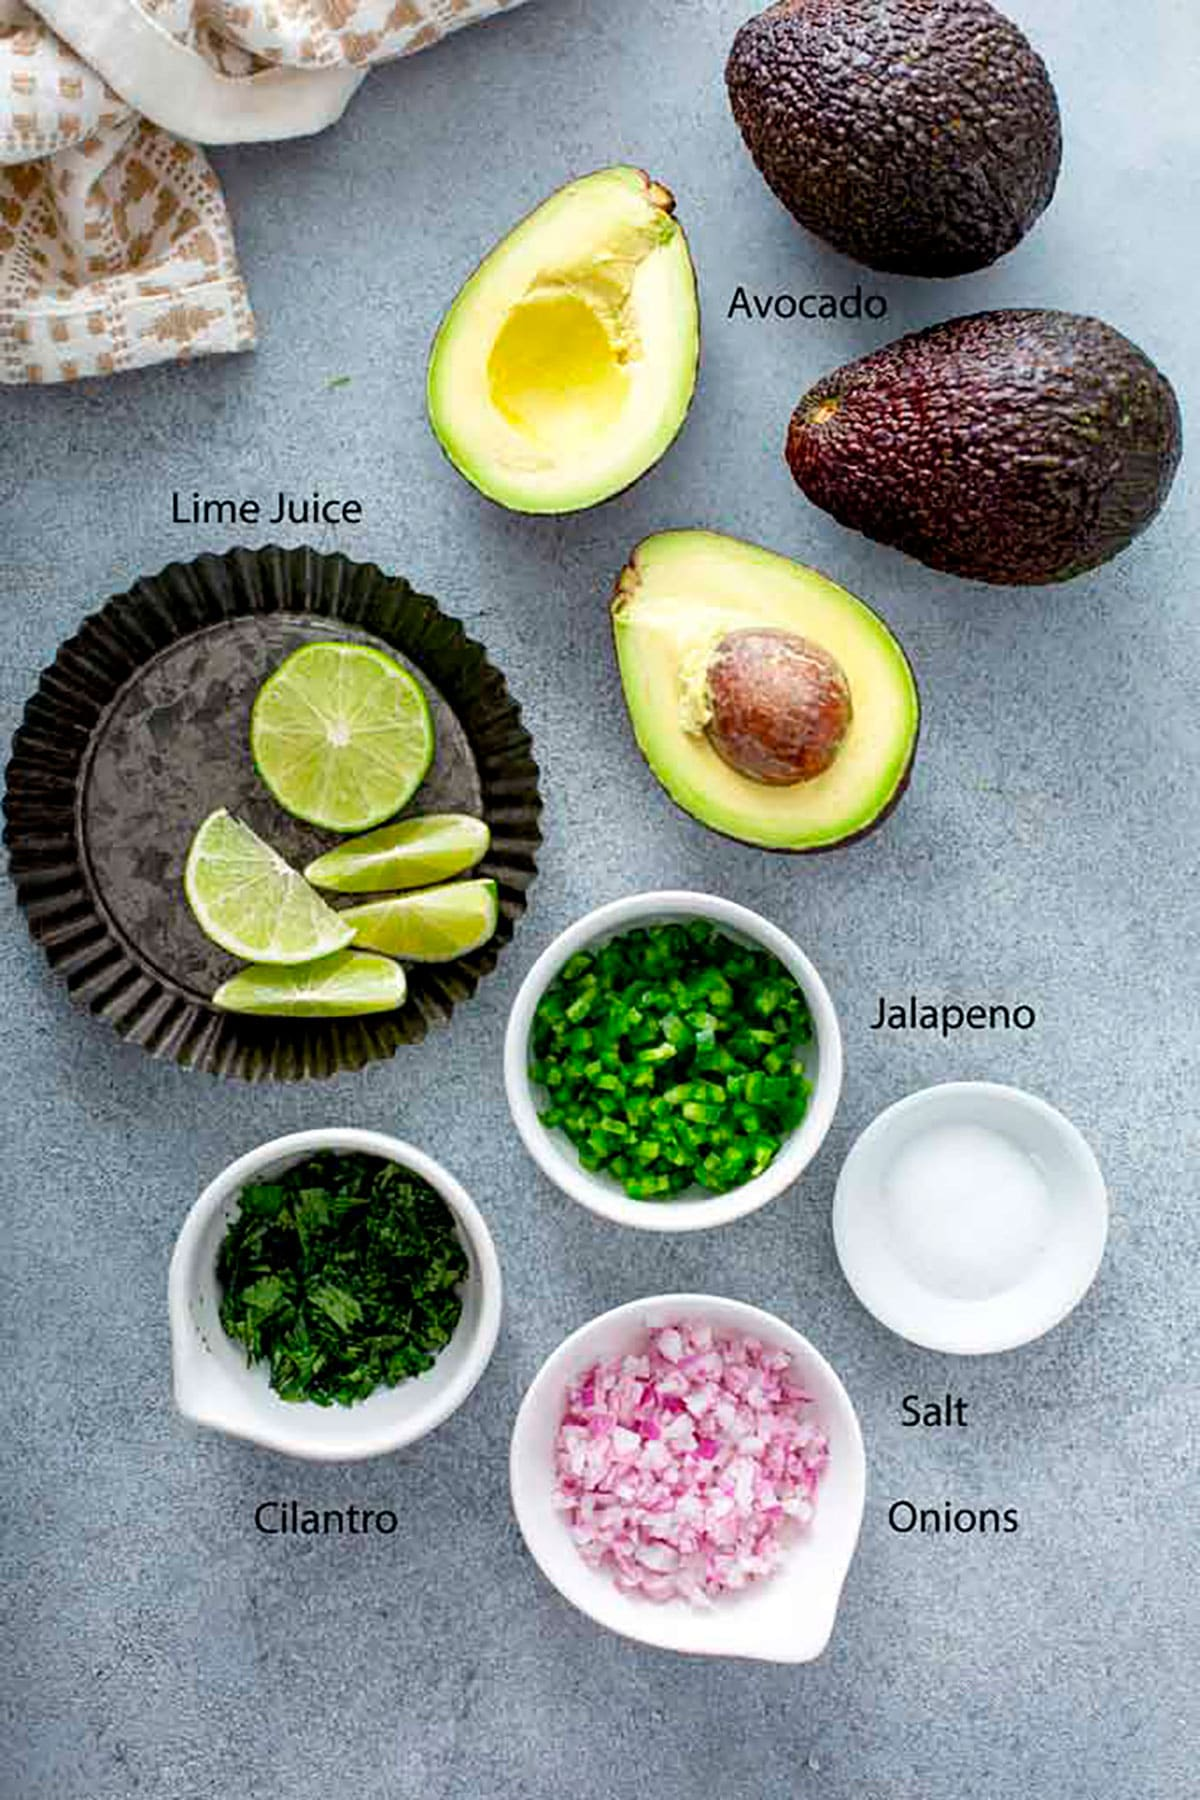 Ingredients  to make guacamole on a gray surface